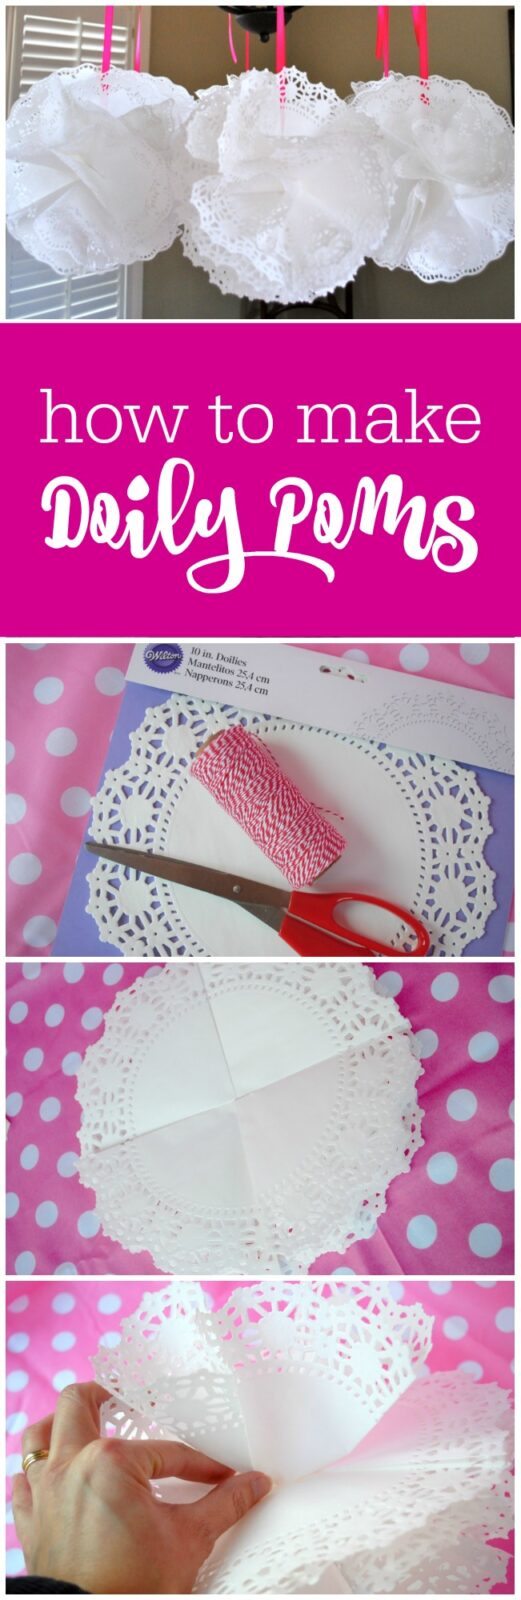 How to make doily poms - it's as easy as folding and hot gluing - The Party Teacher